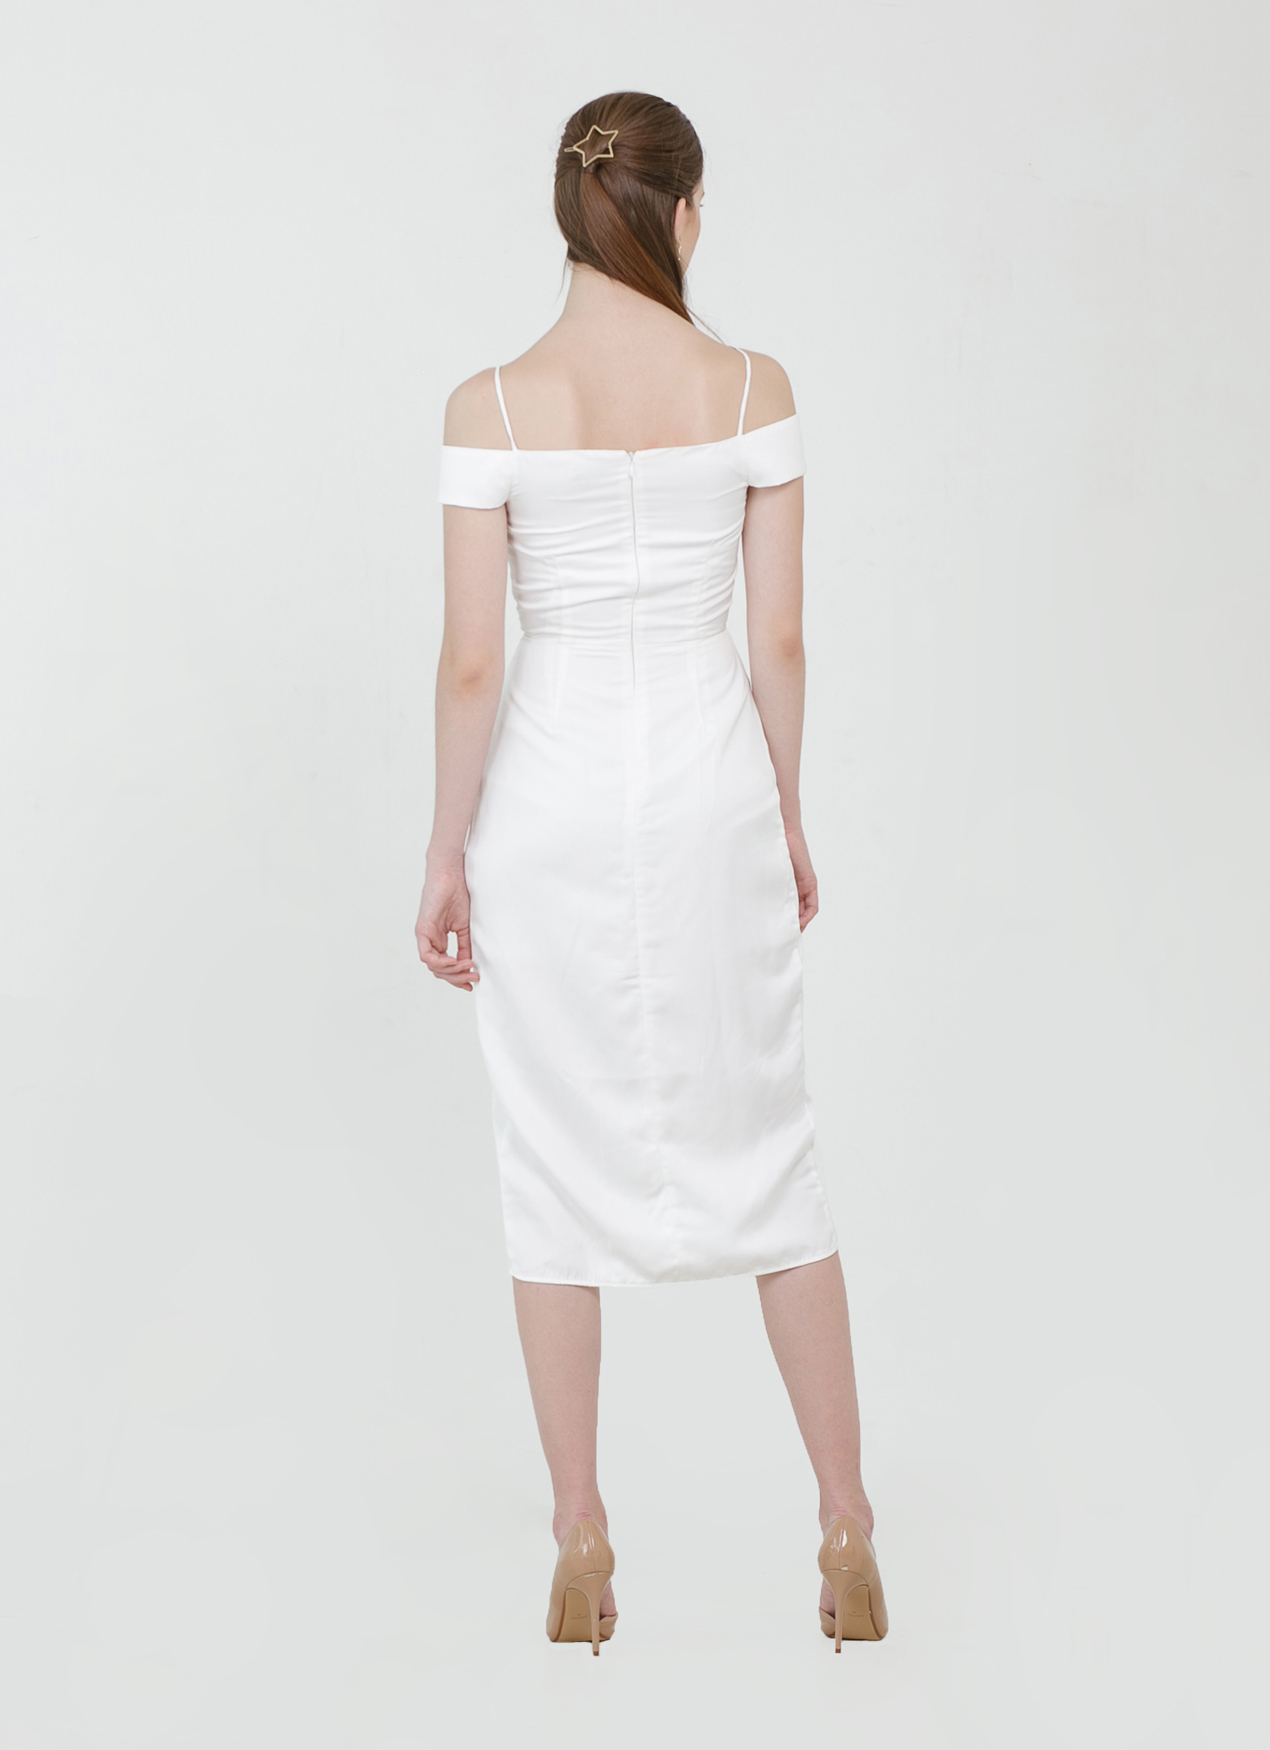 CLOTH INC Minka Tulip Dress - White